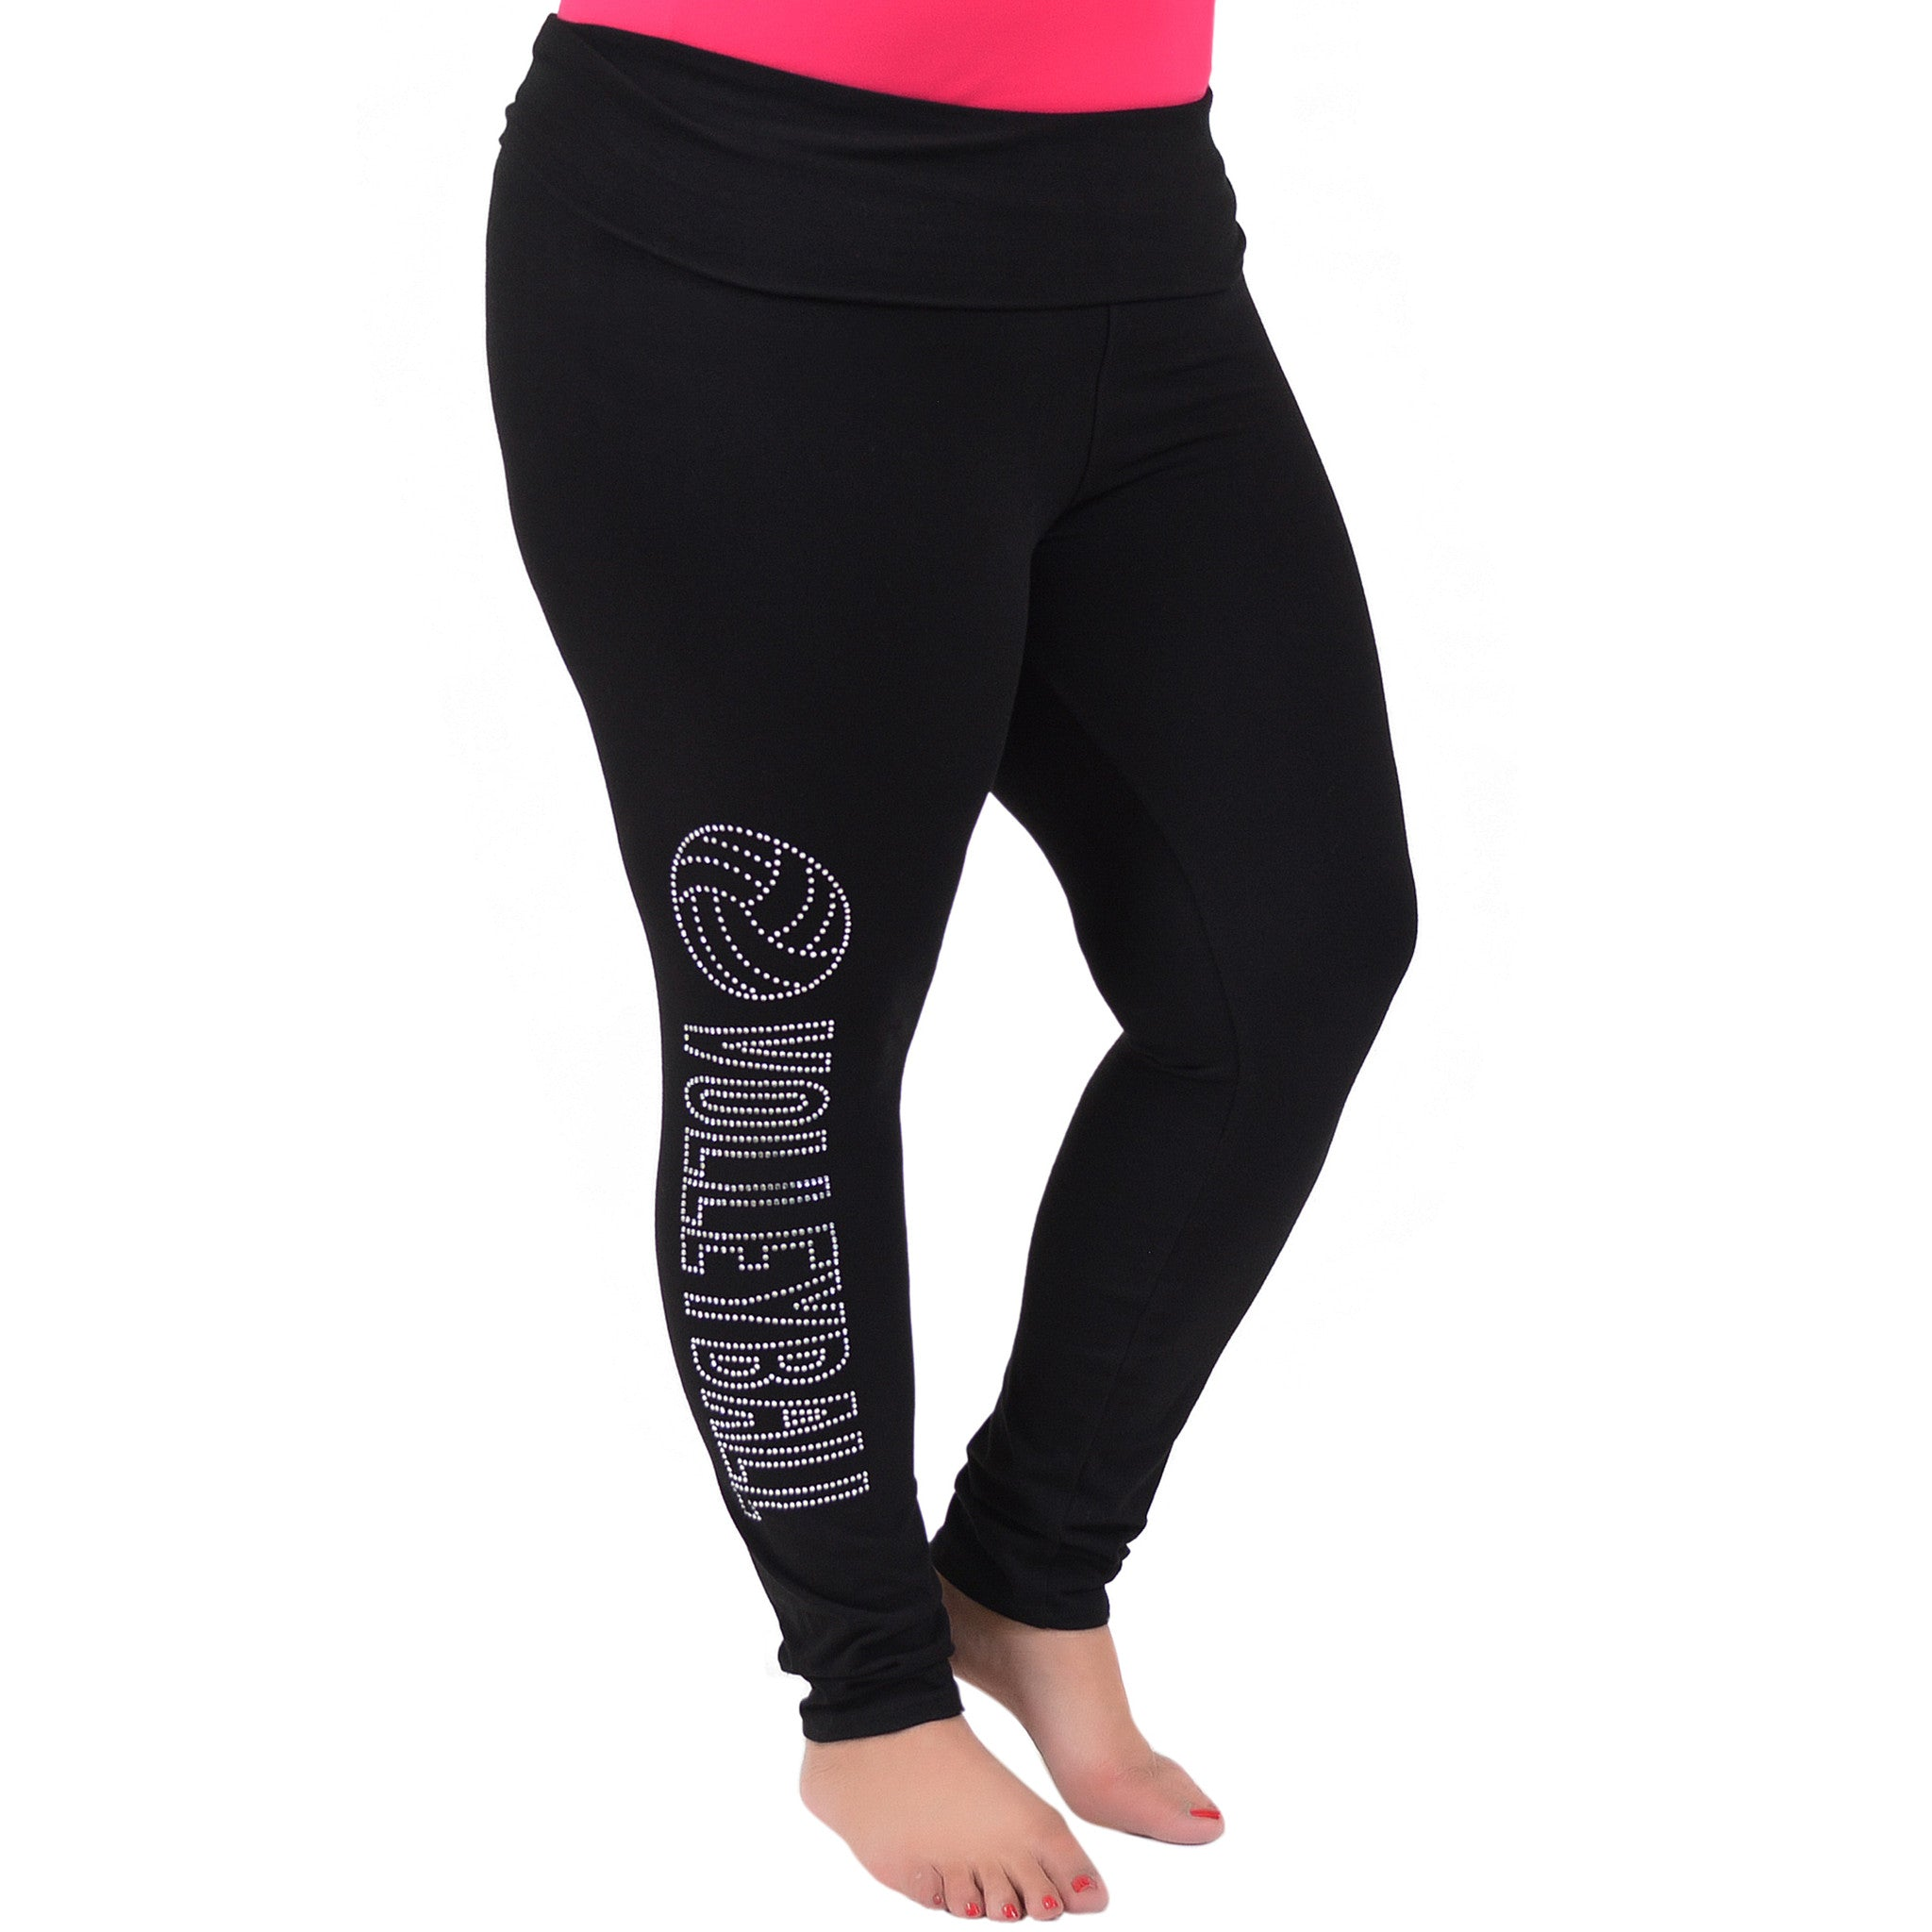 Plus Size Volleyball Rhinestone Foldover Cotton Leggings